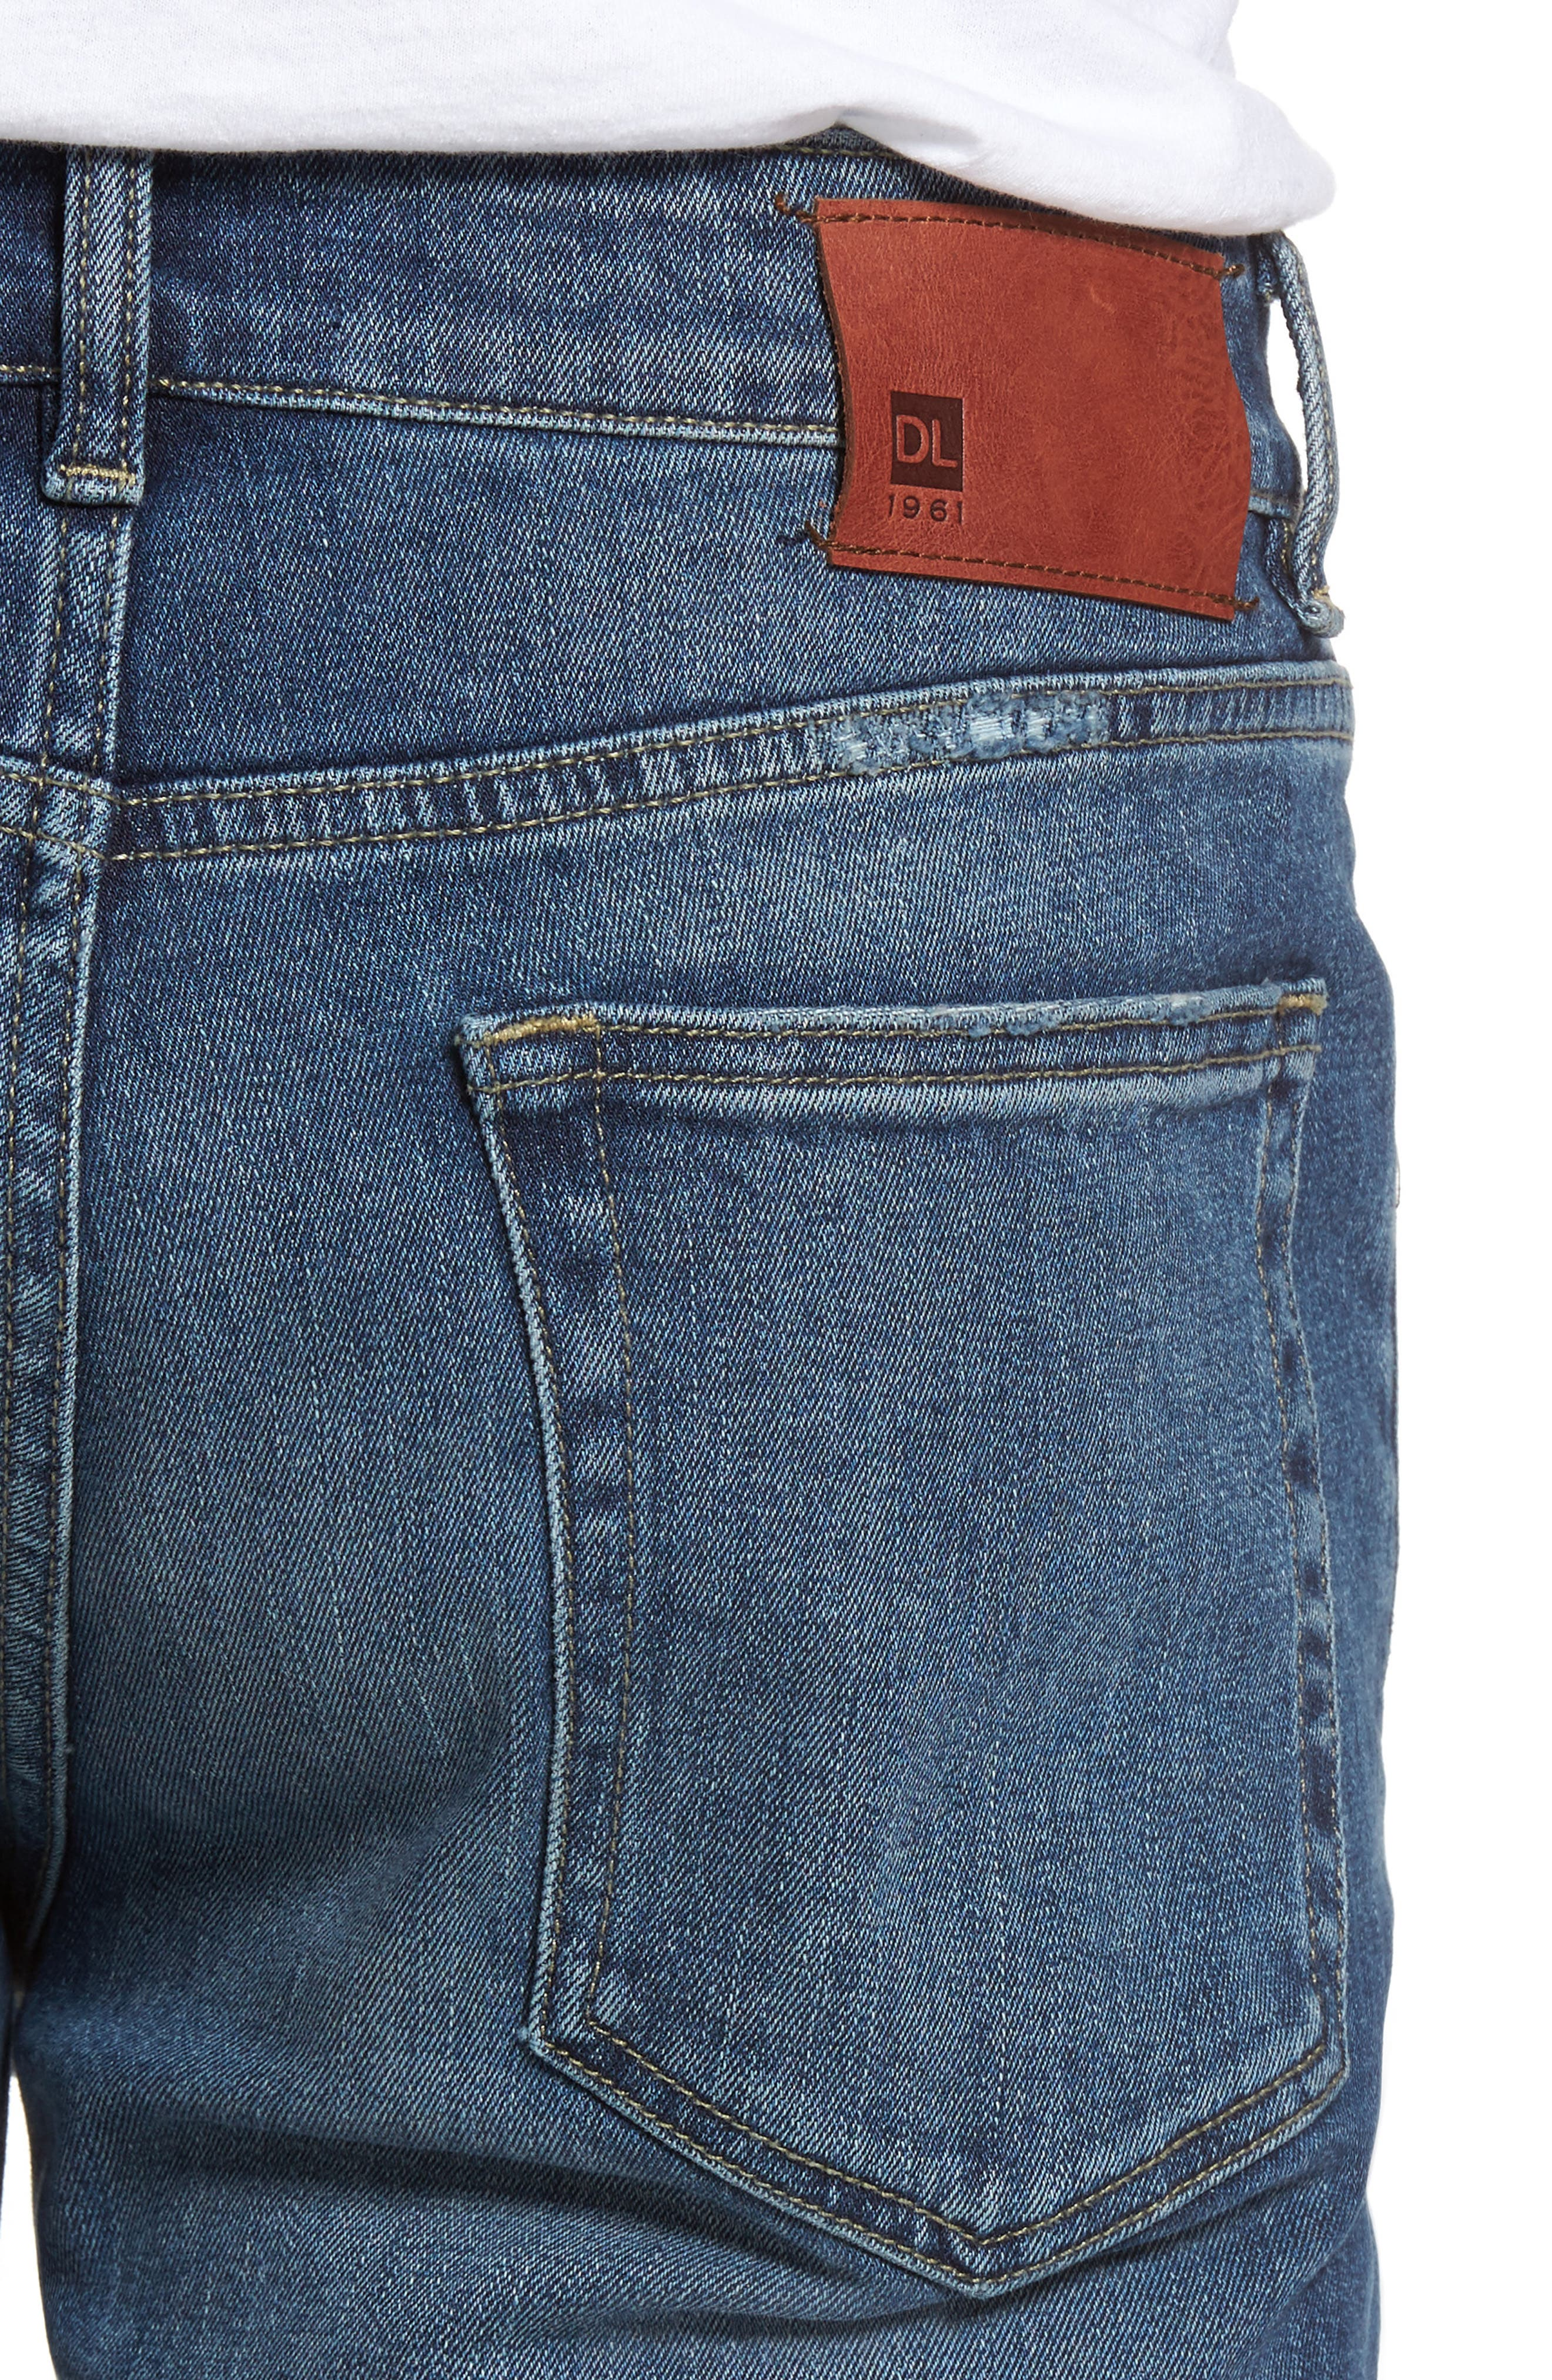 Russell Slim Straight Fit Jeans,                             Alternate thumbnail 4, color,